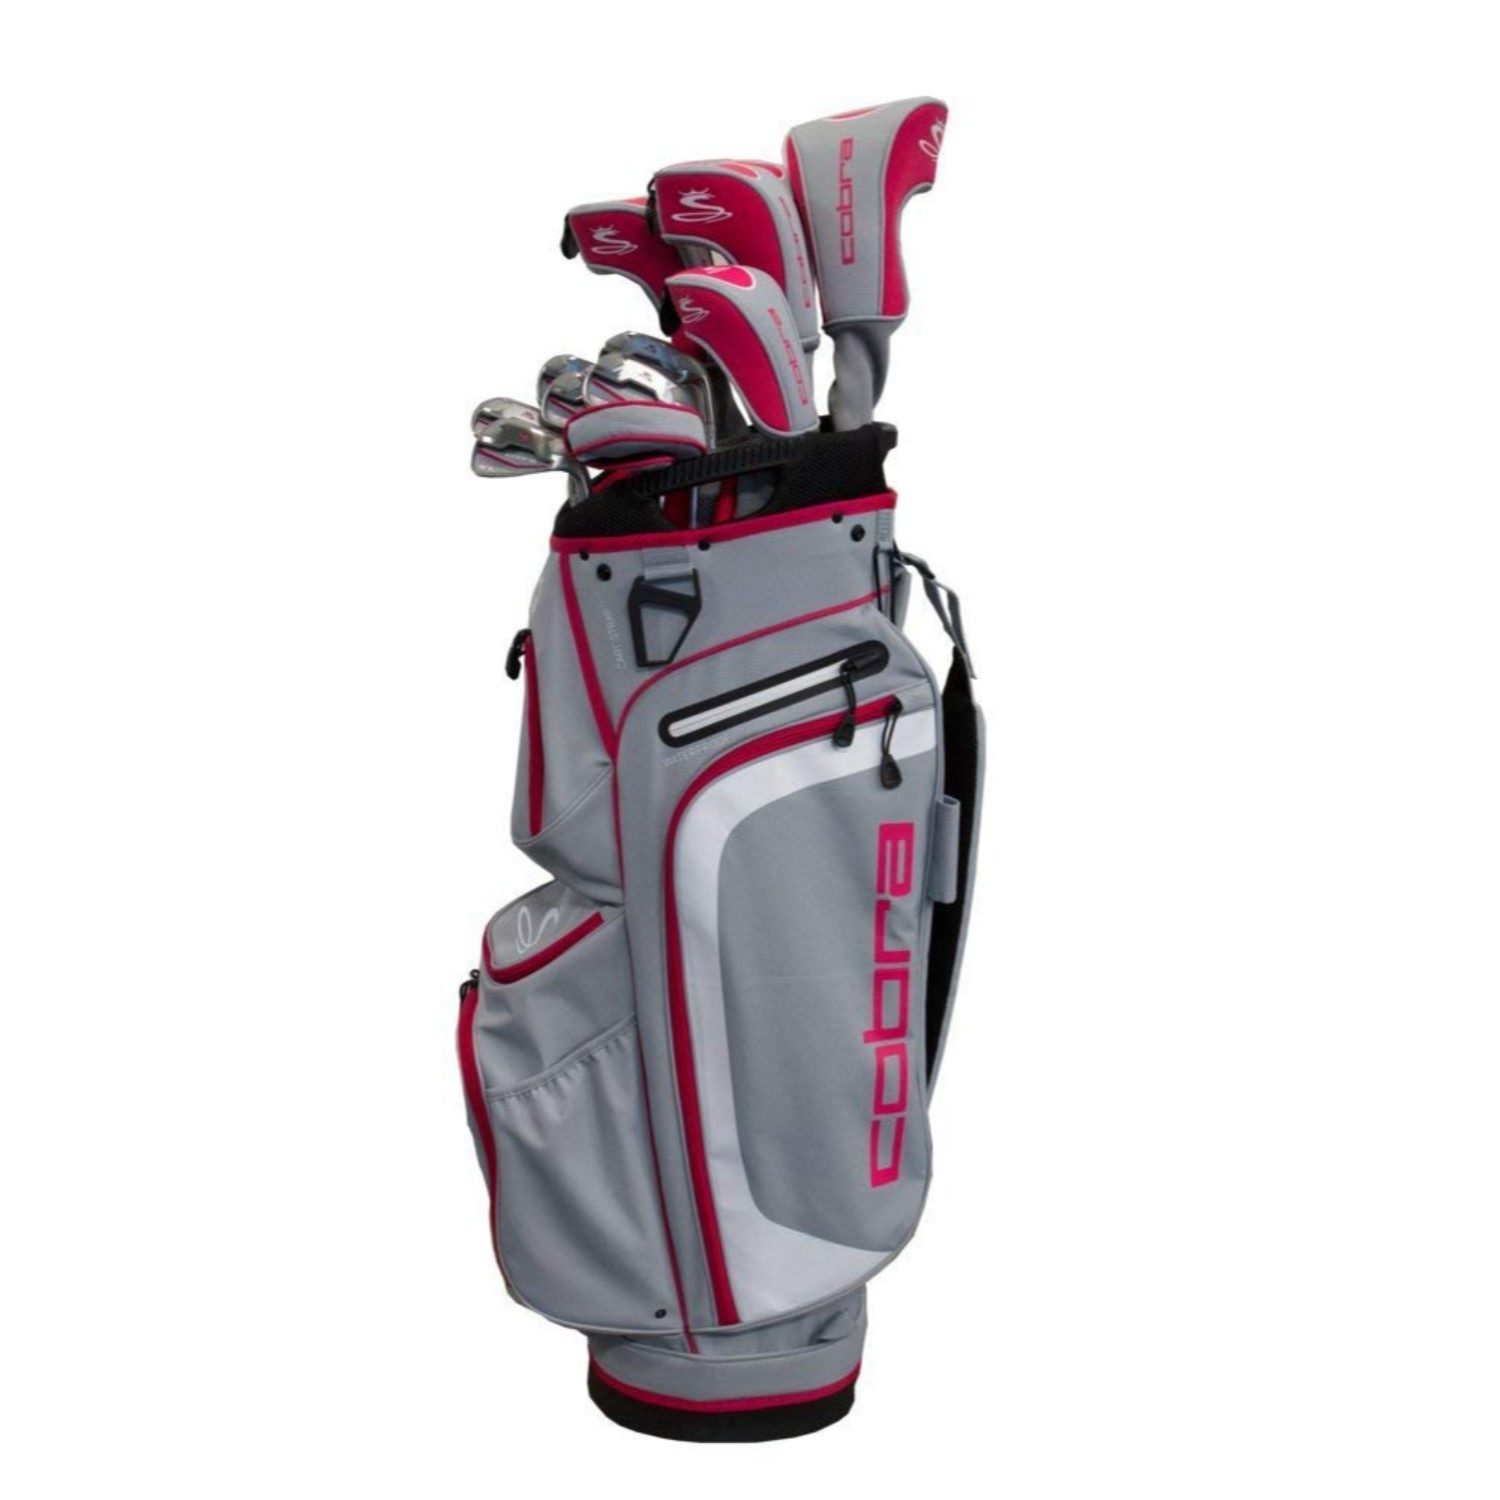 Cobra Golf Women's XL Complete Set Silver-Raspberry RH